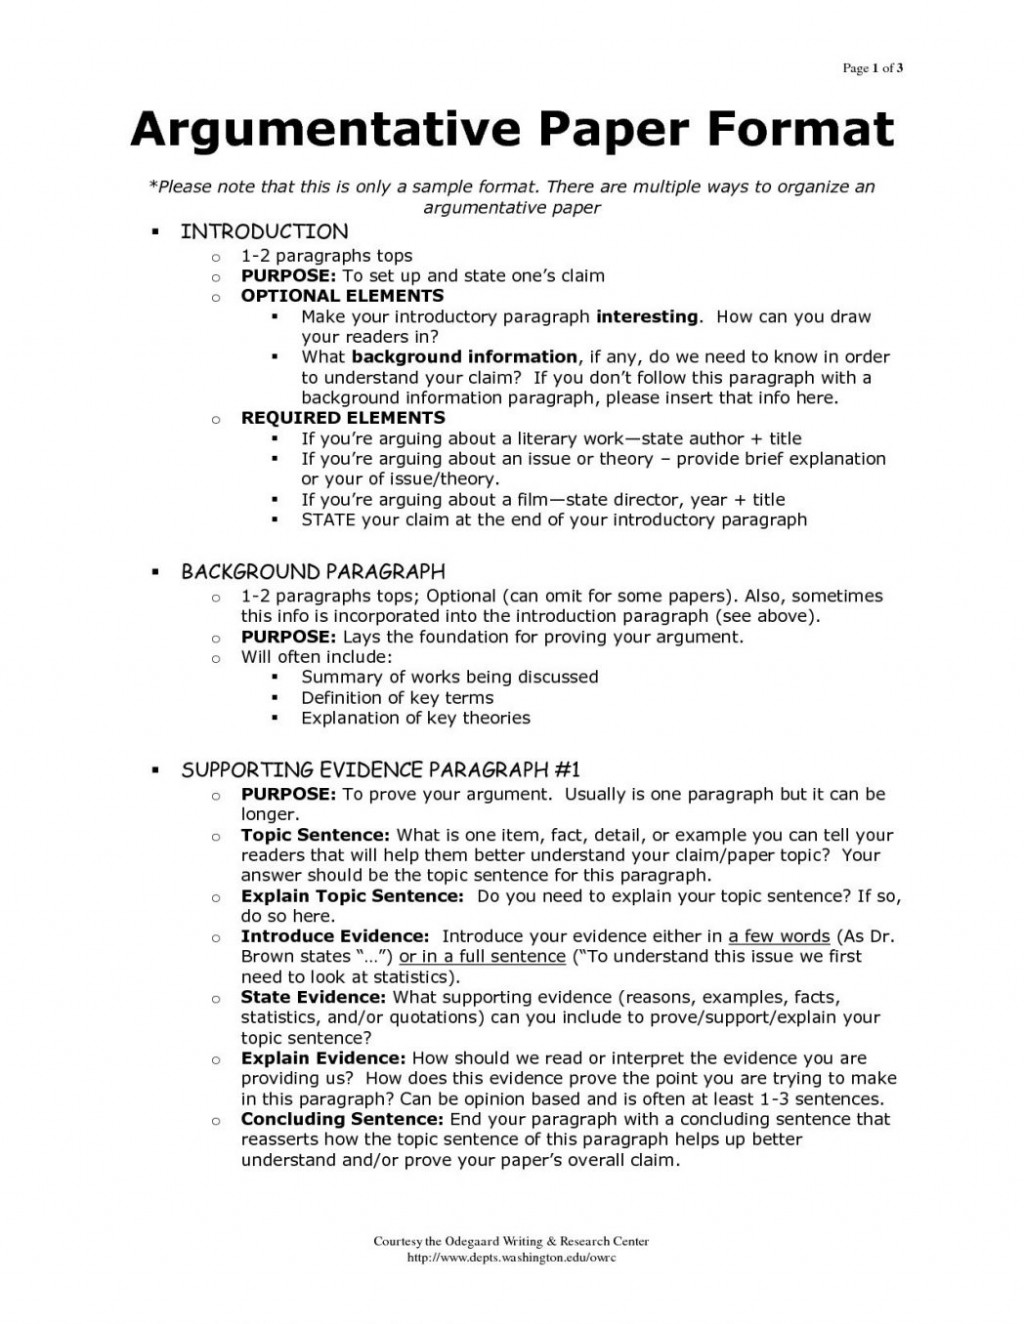 003 Essay Example Argumentative Conclusion Outline Writings And Essays Argument Layout Debate Proposal Examples Pertainin Samples How To Write An Stunning Template Uk Structure For University Large